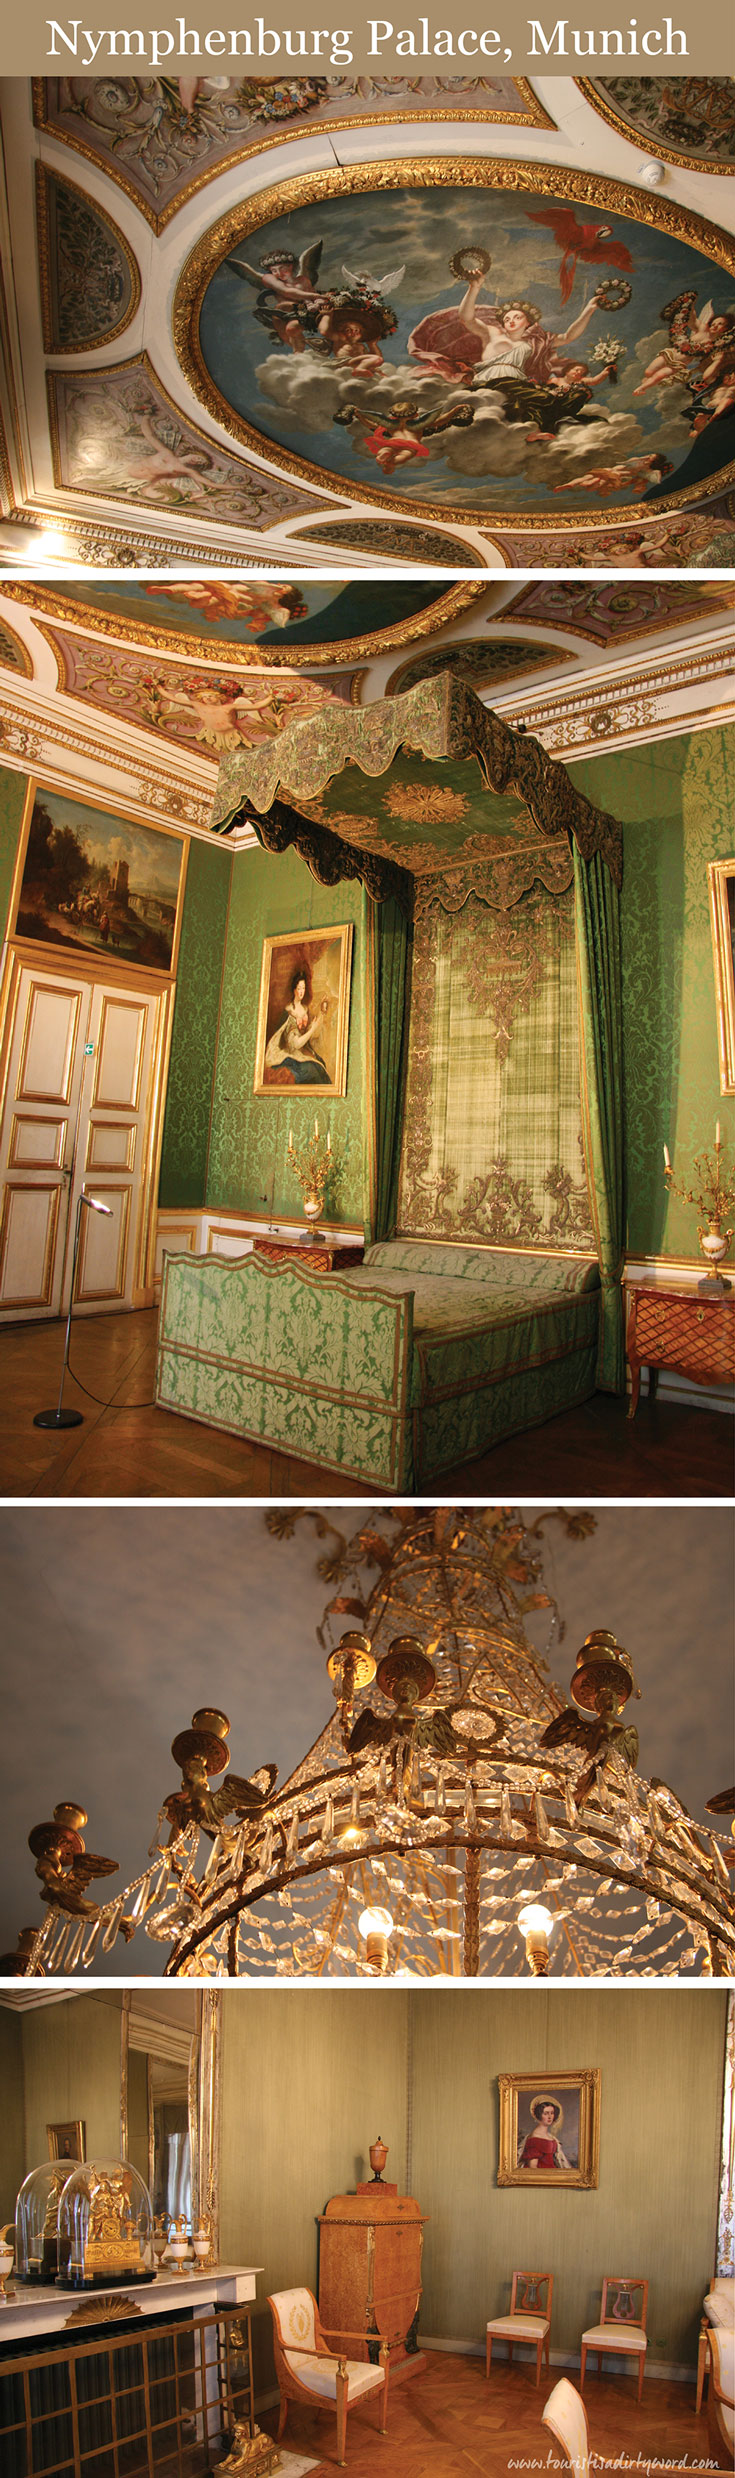 Nymphenburg Palace Bedrooms, Munich • Germany Travel Blog Tourist is a Dirty Word